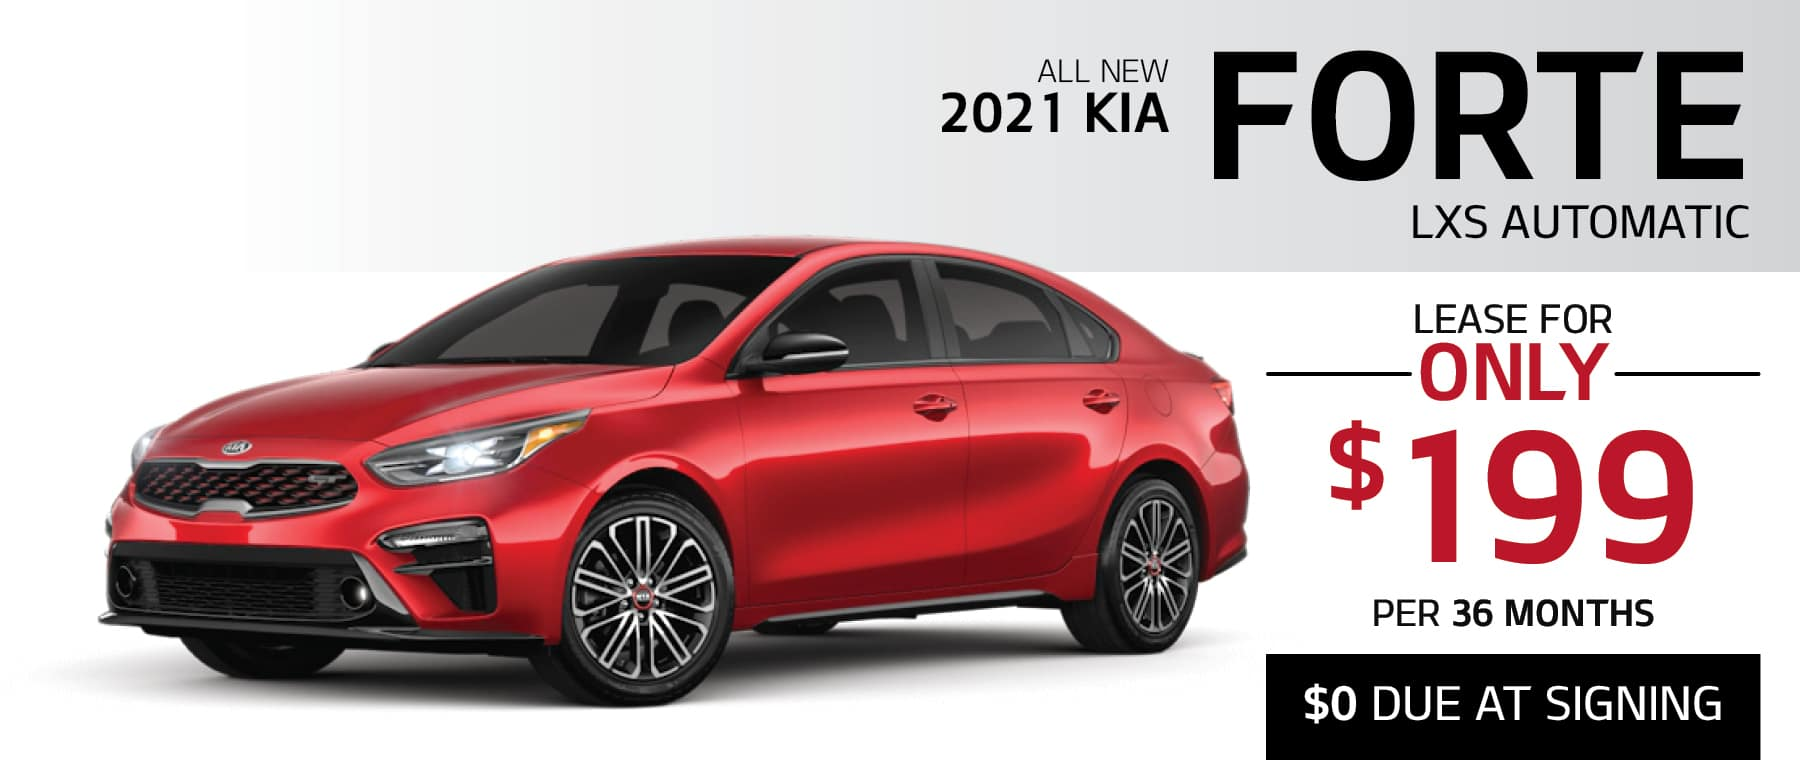 2021 Kia Forte LXS Automatic 0% APR Financing or lease for $199 per month for 36 months with $0 Due at signing